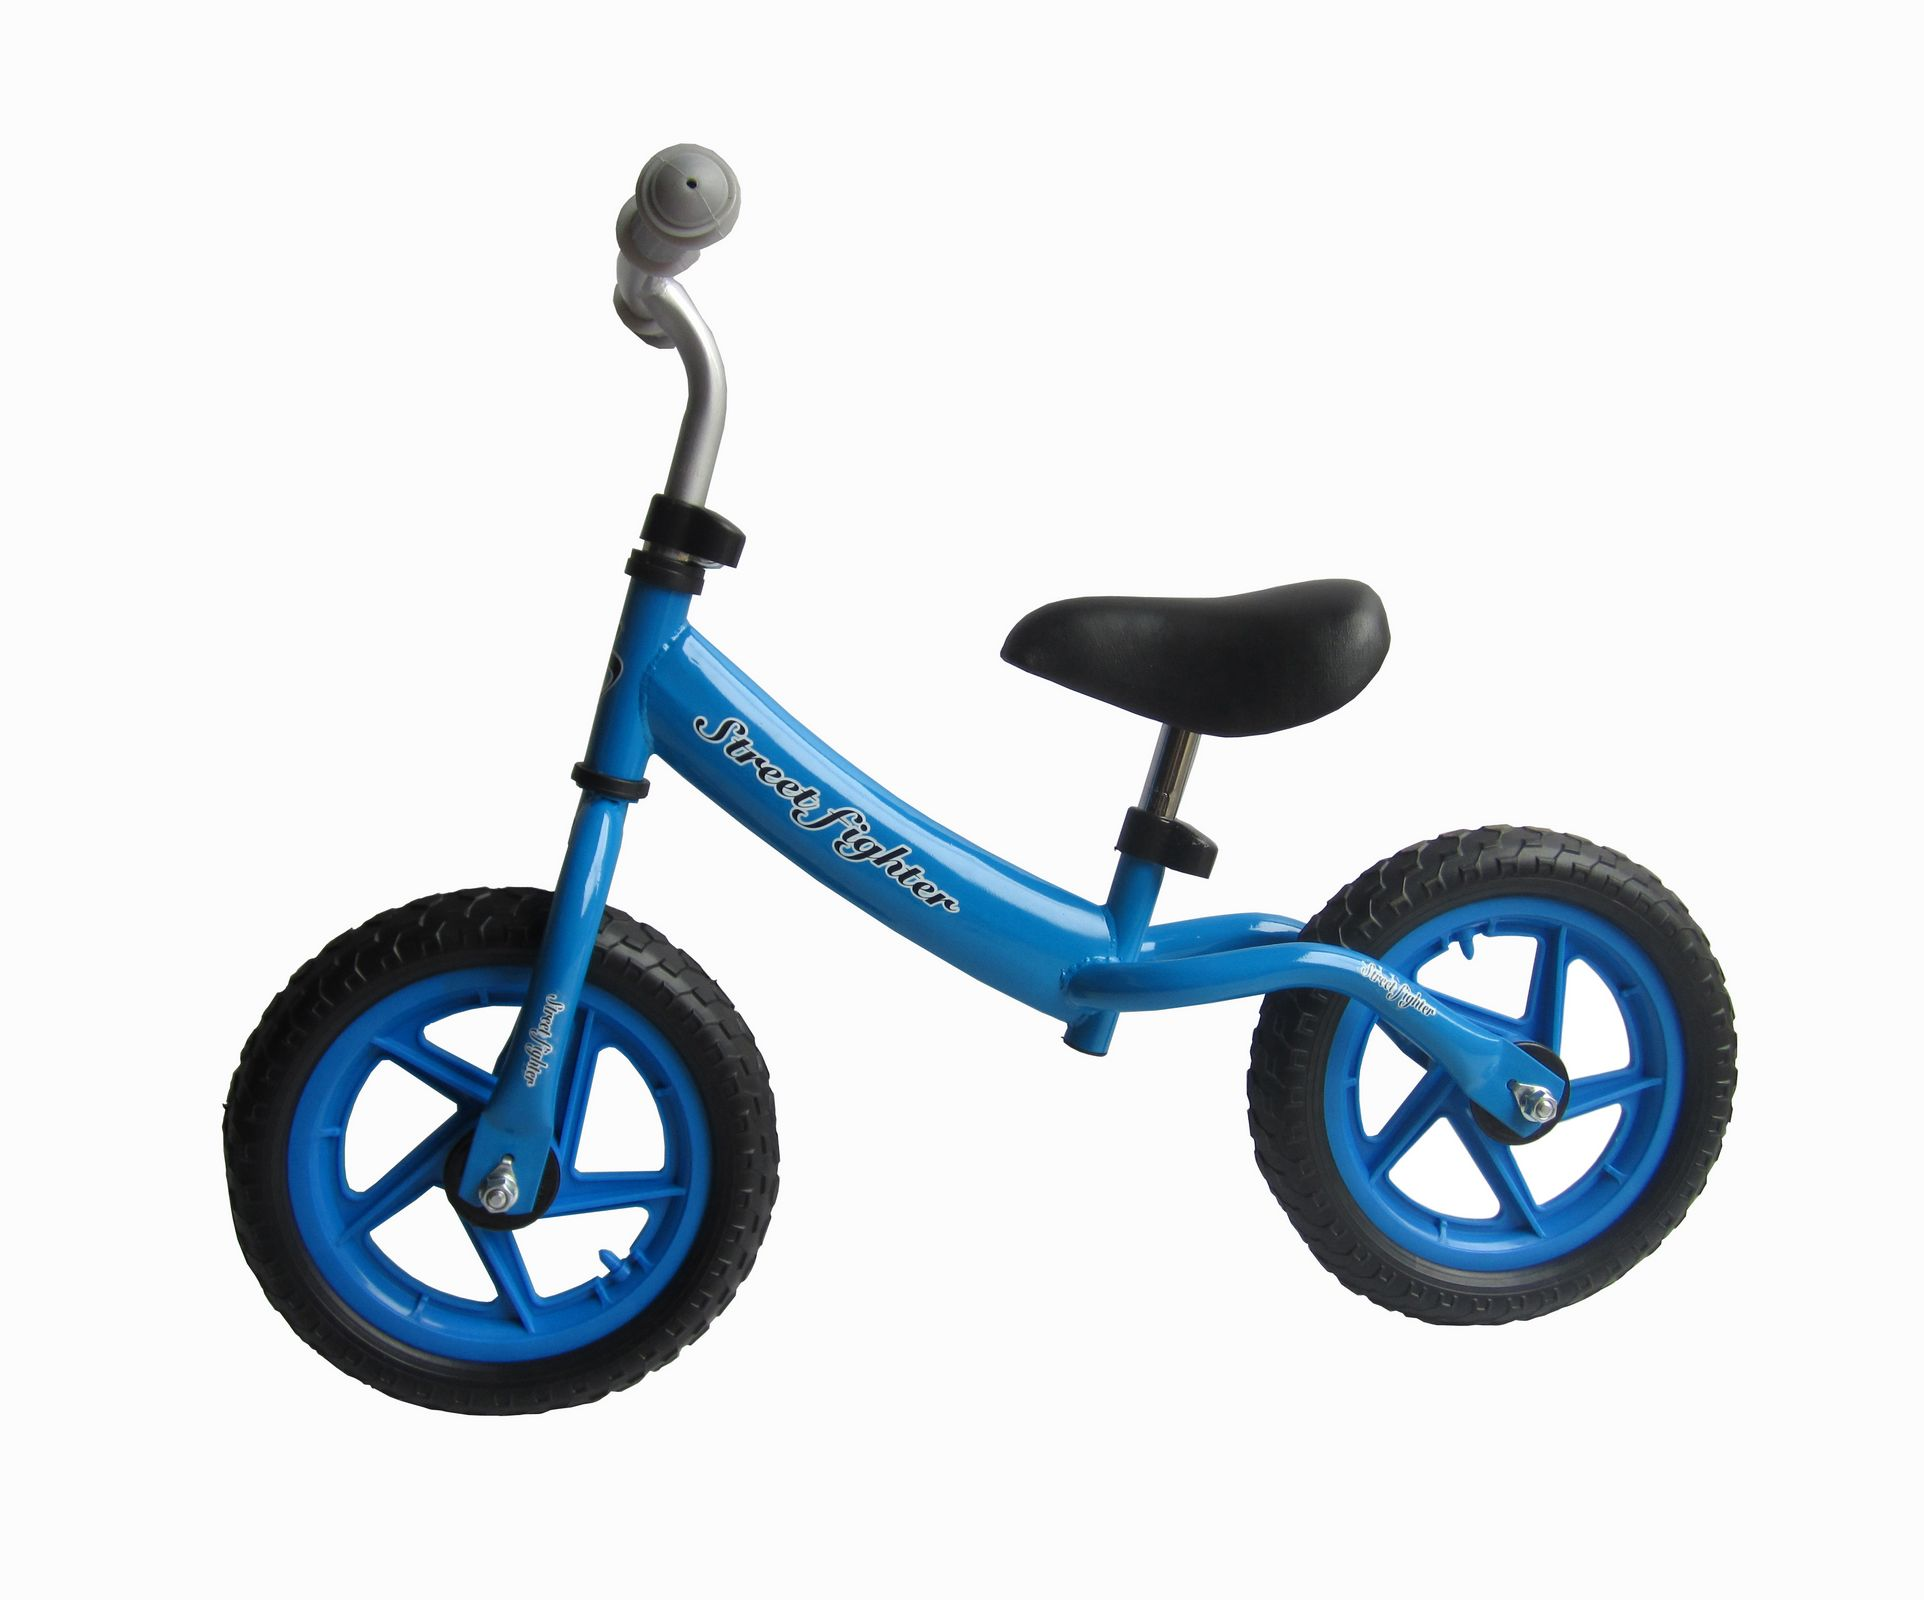 Blue B02 Kids Steel Balance Bike No Pedal First Running Training Learning Cycle